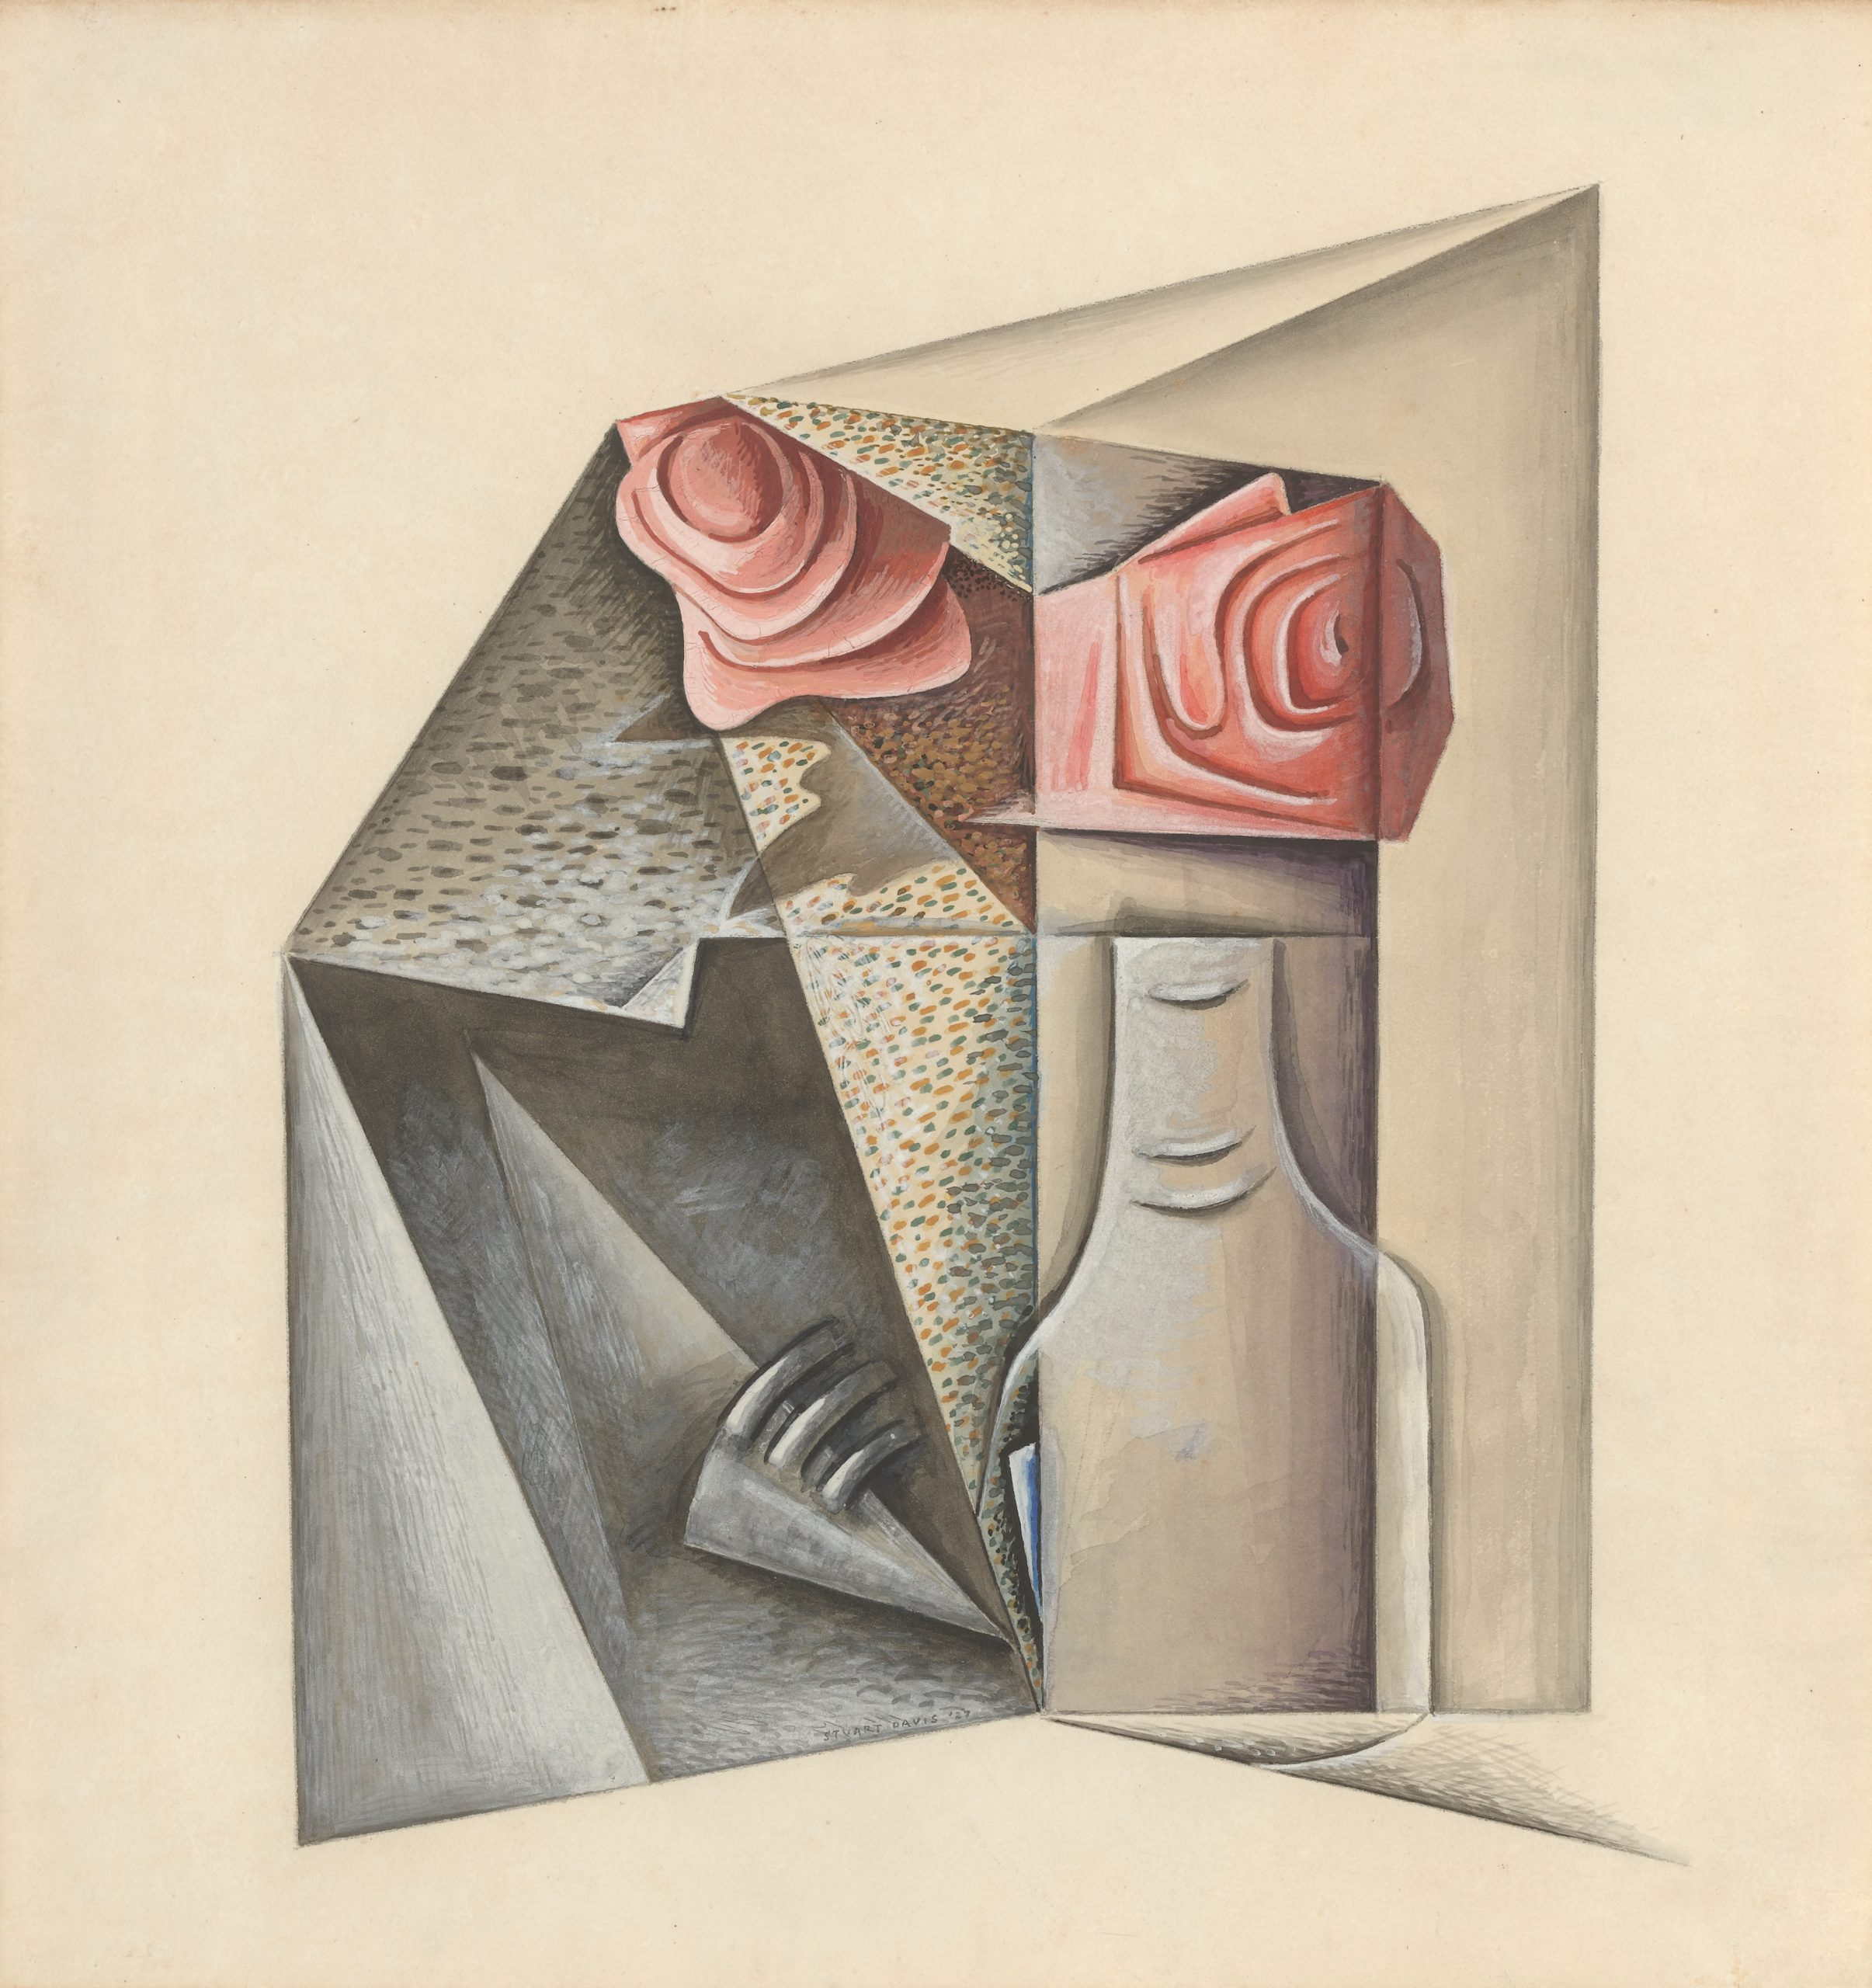 A cubist still life of two pink roses in a glass vase.